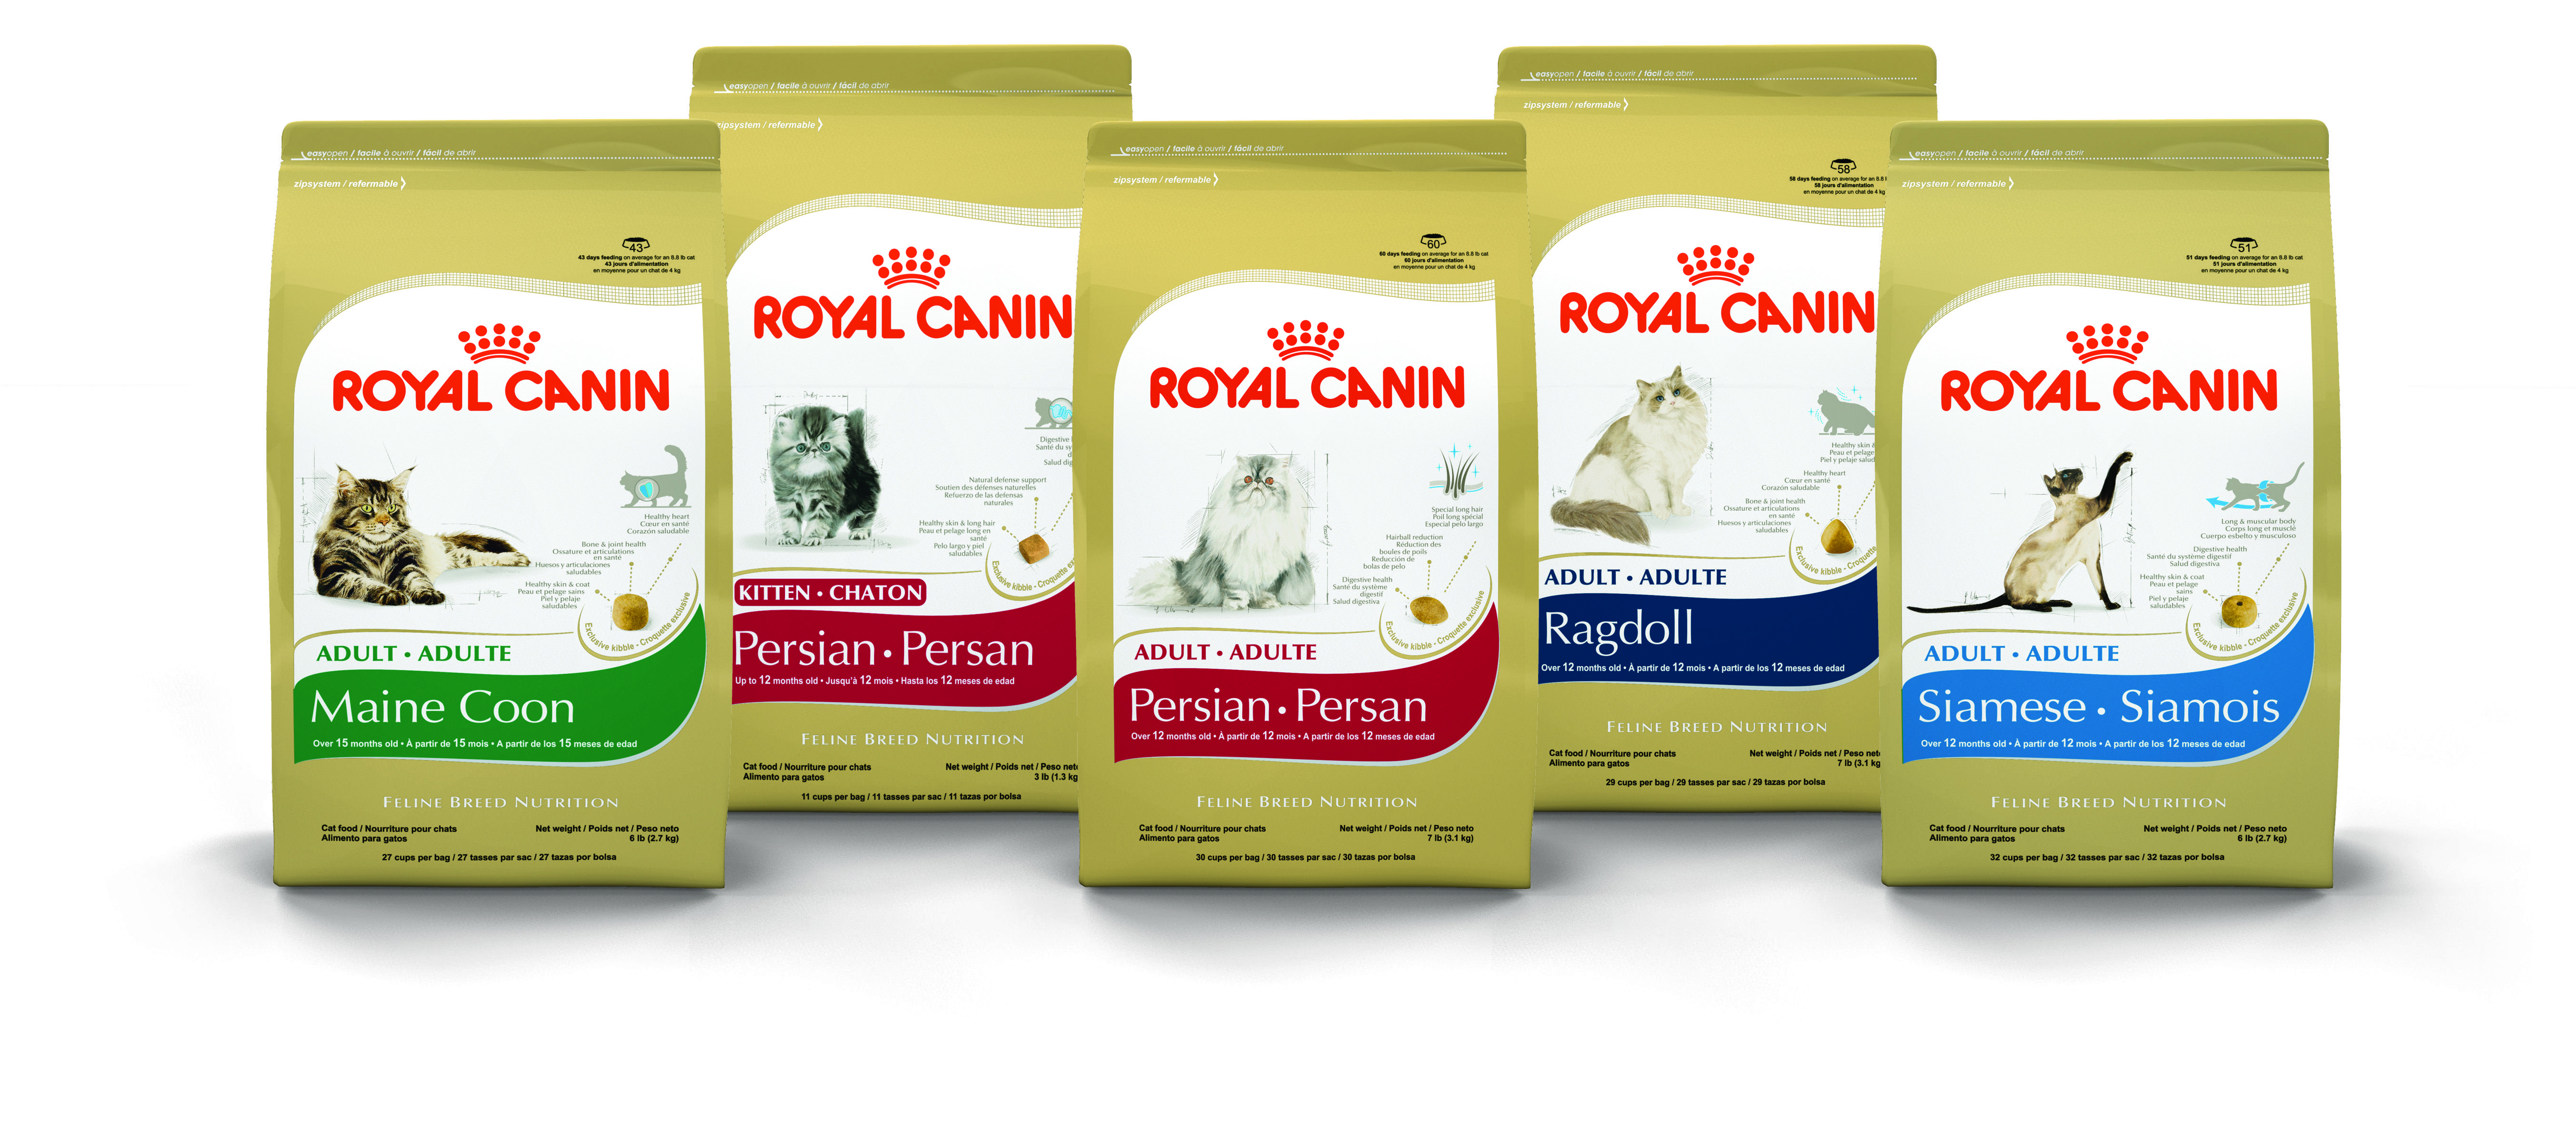 Enter the Royal Canin Cat Pinterest contest to win cat